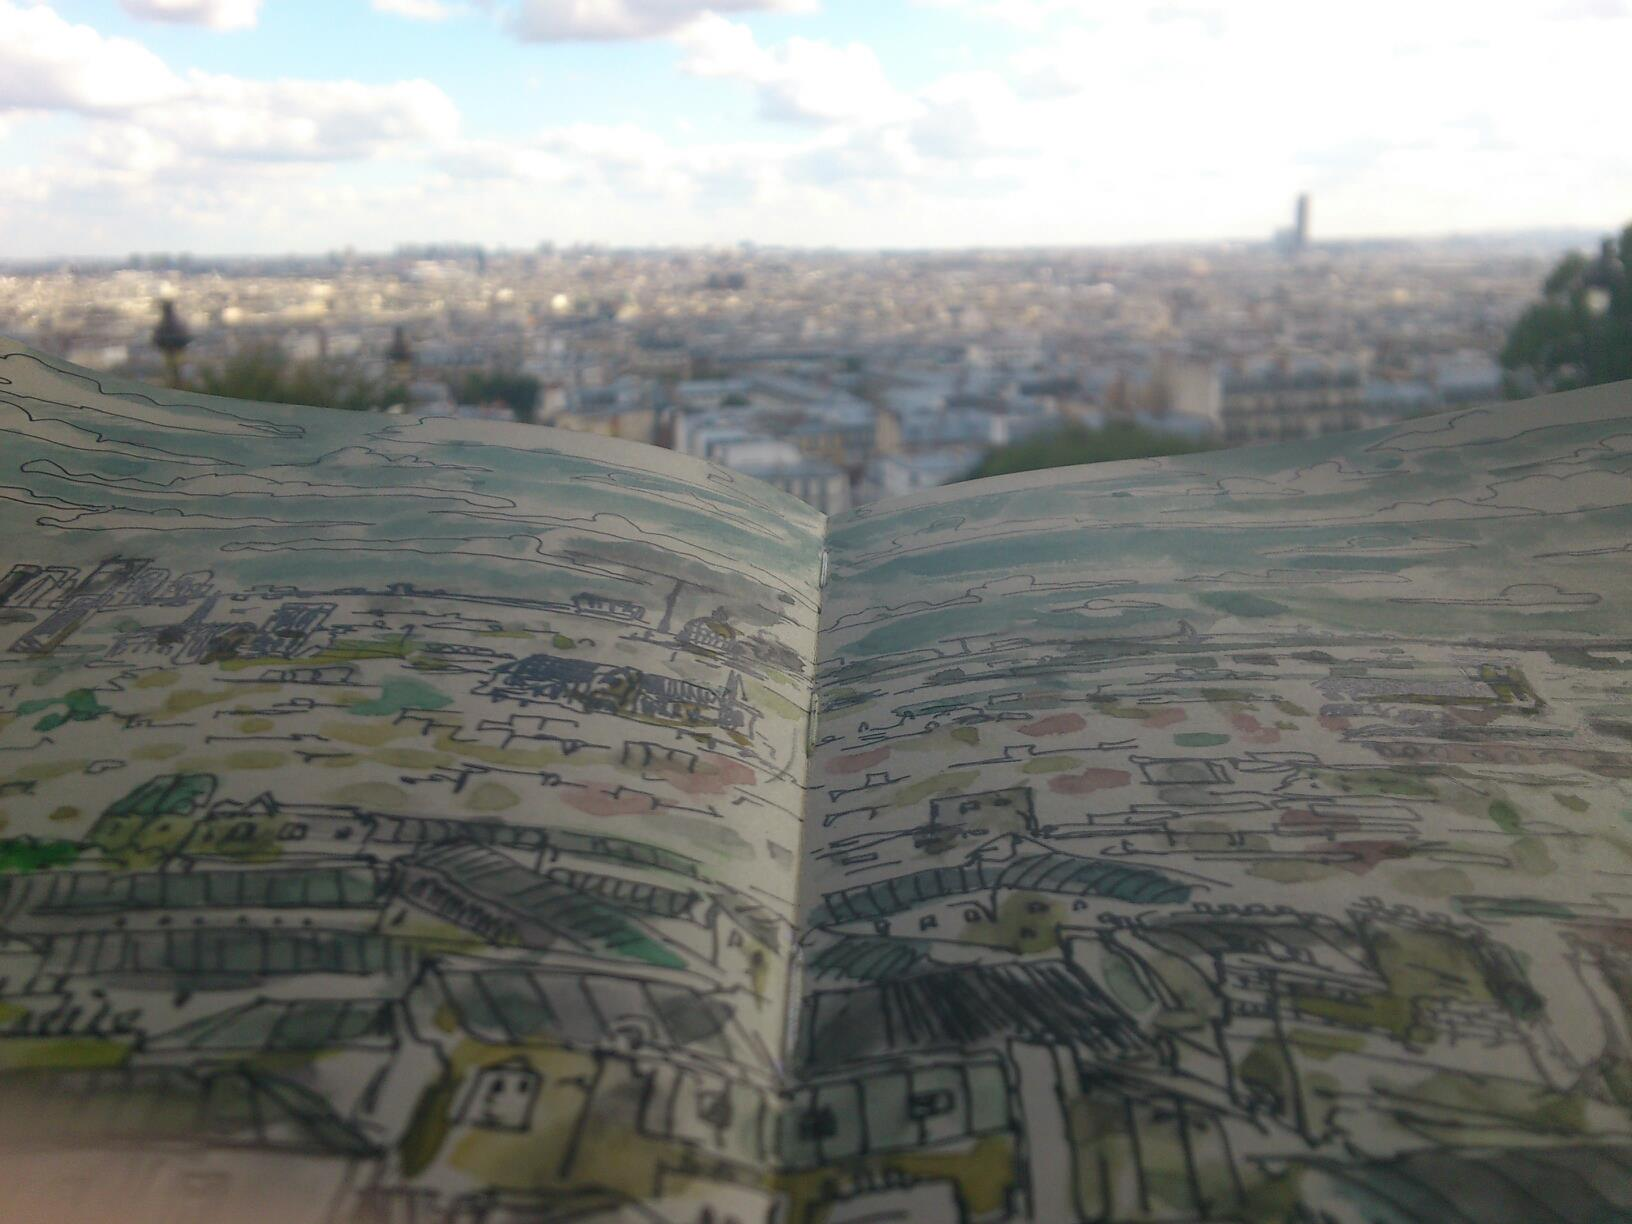 Montmartre, sketch and photo.